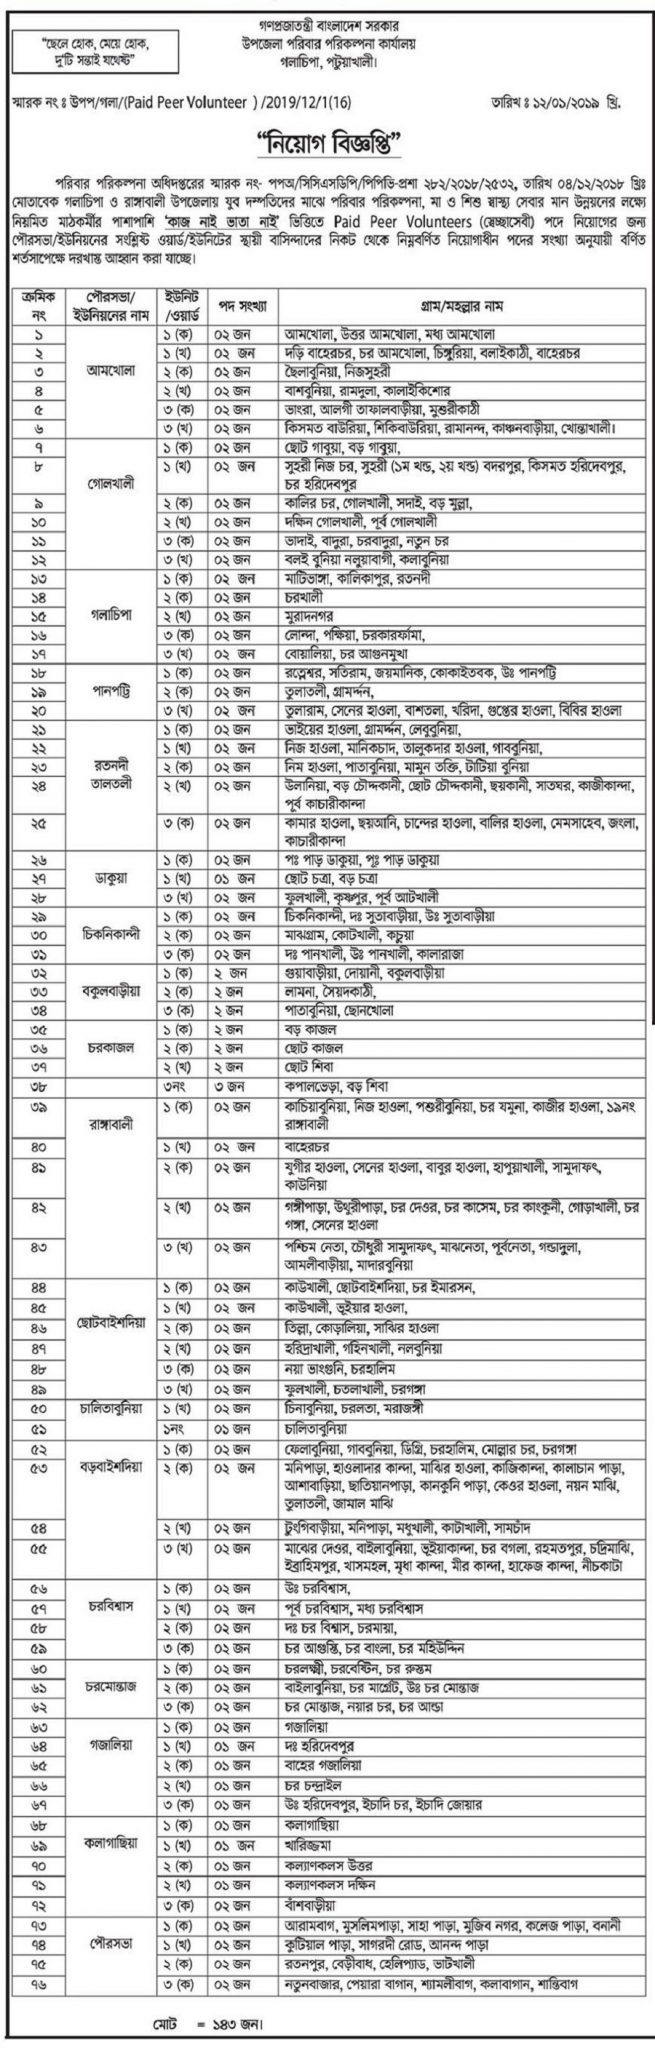 Upazila Family Planning Office Job Circular 2019